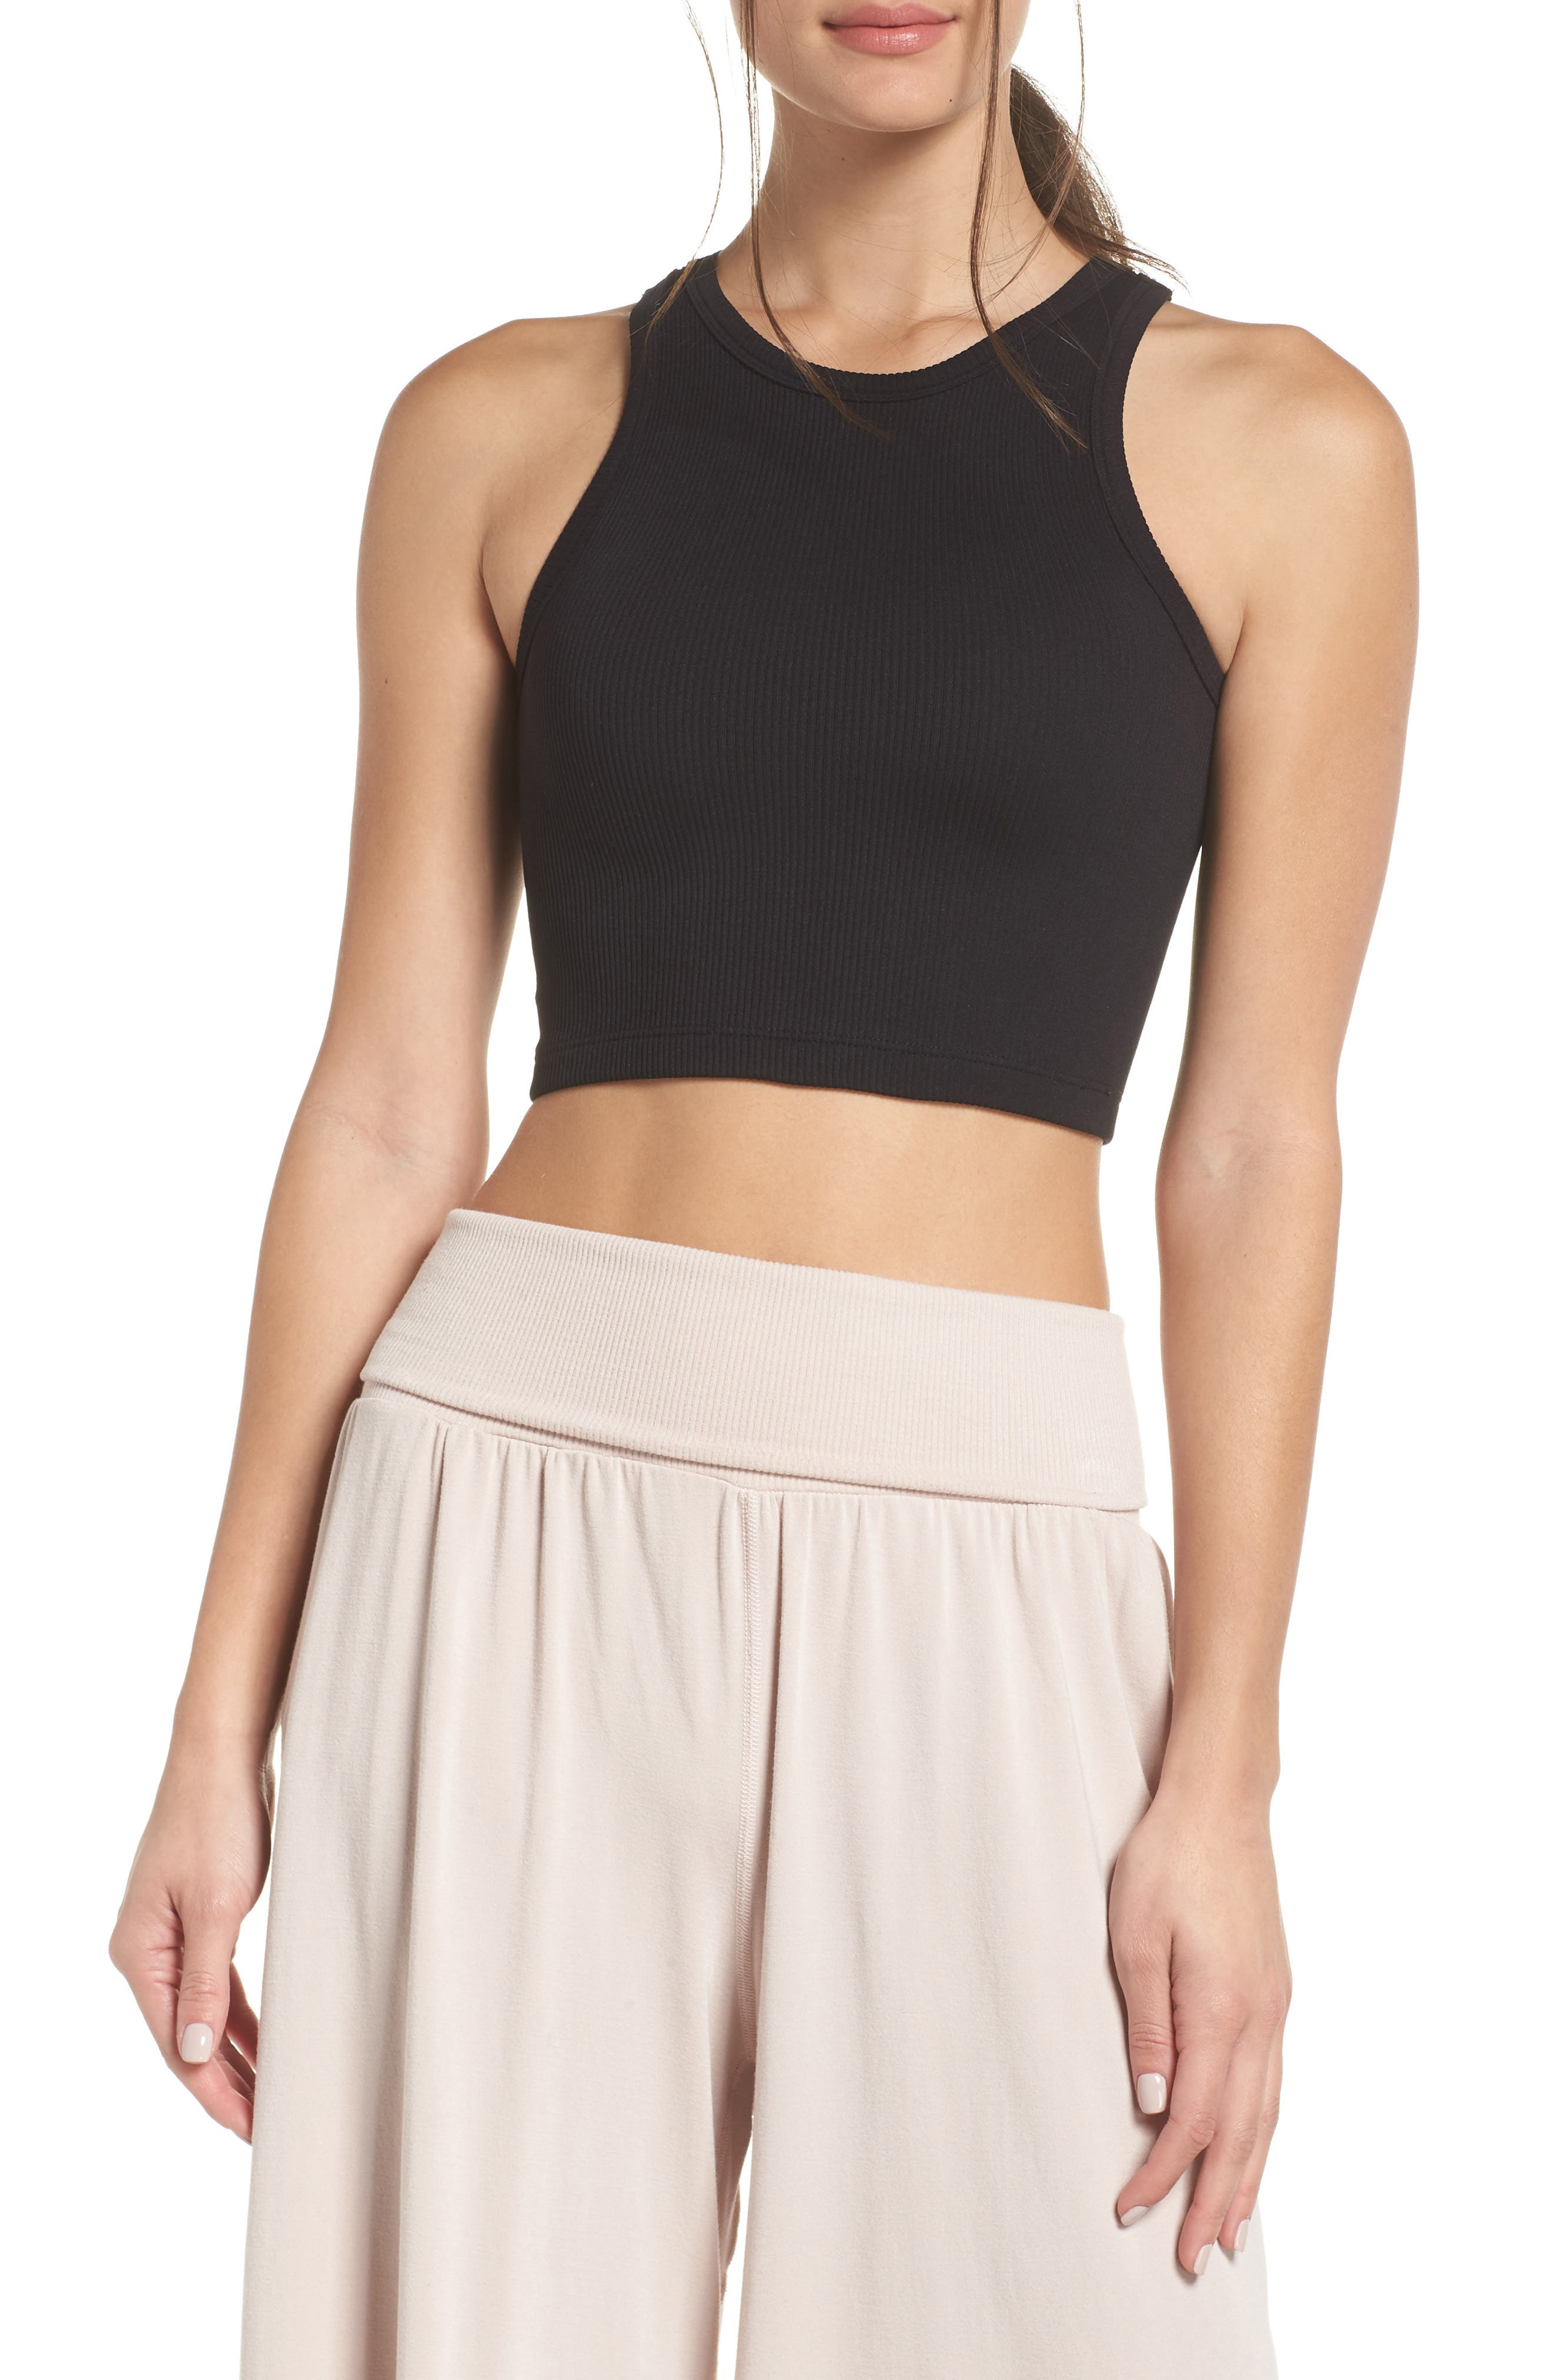 FREE PEOPLE MOVEMENT,                             Free People FP Movement Roxy Seamless Crop Tank,                             Main thumbnail 1, color,                             BLACK